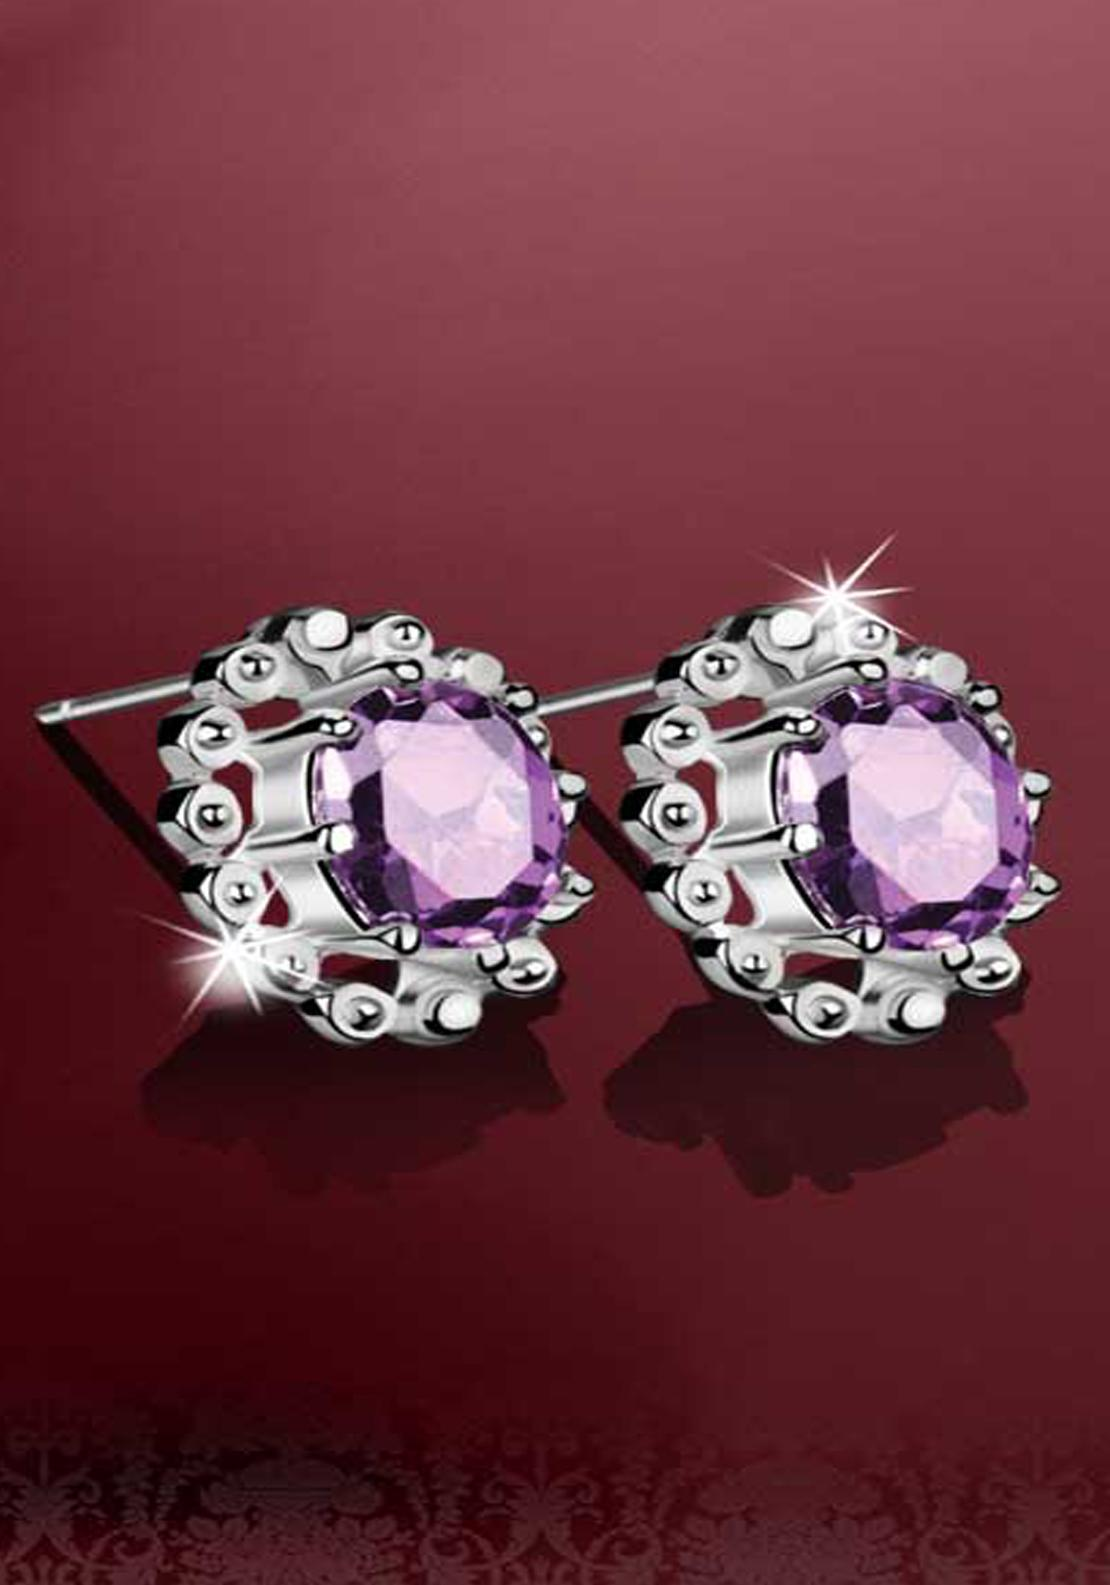 Newbridge Vintage Round Stones Earrings, Silver / Purple